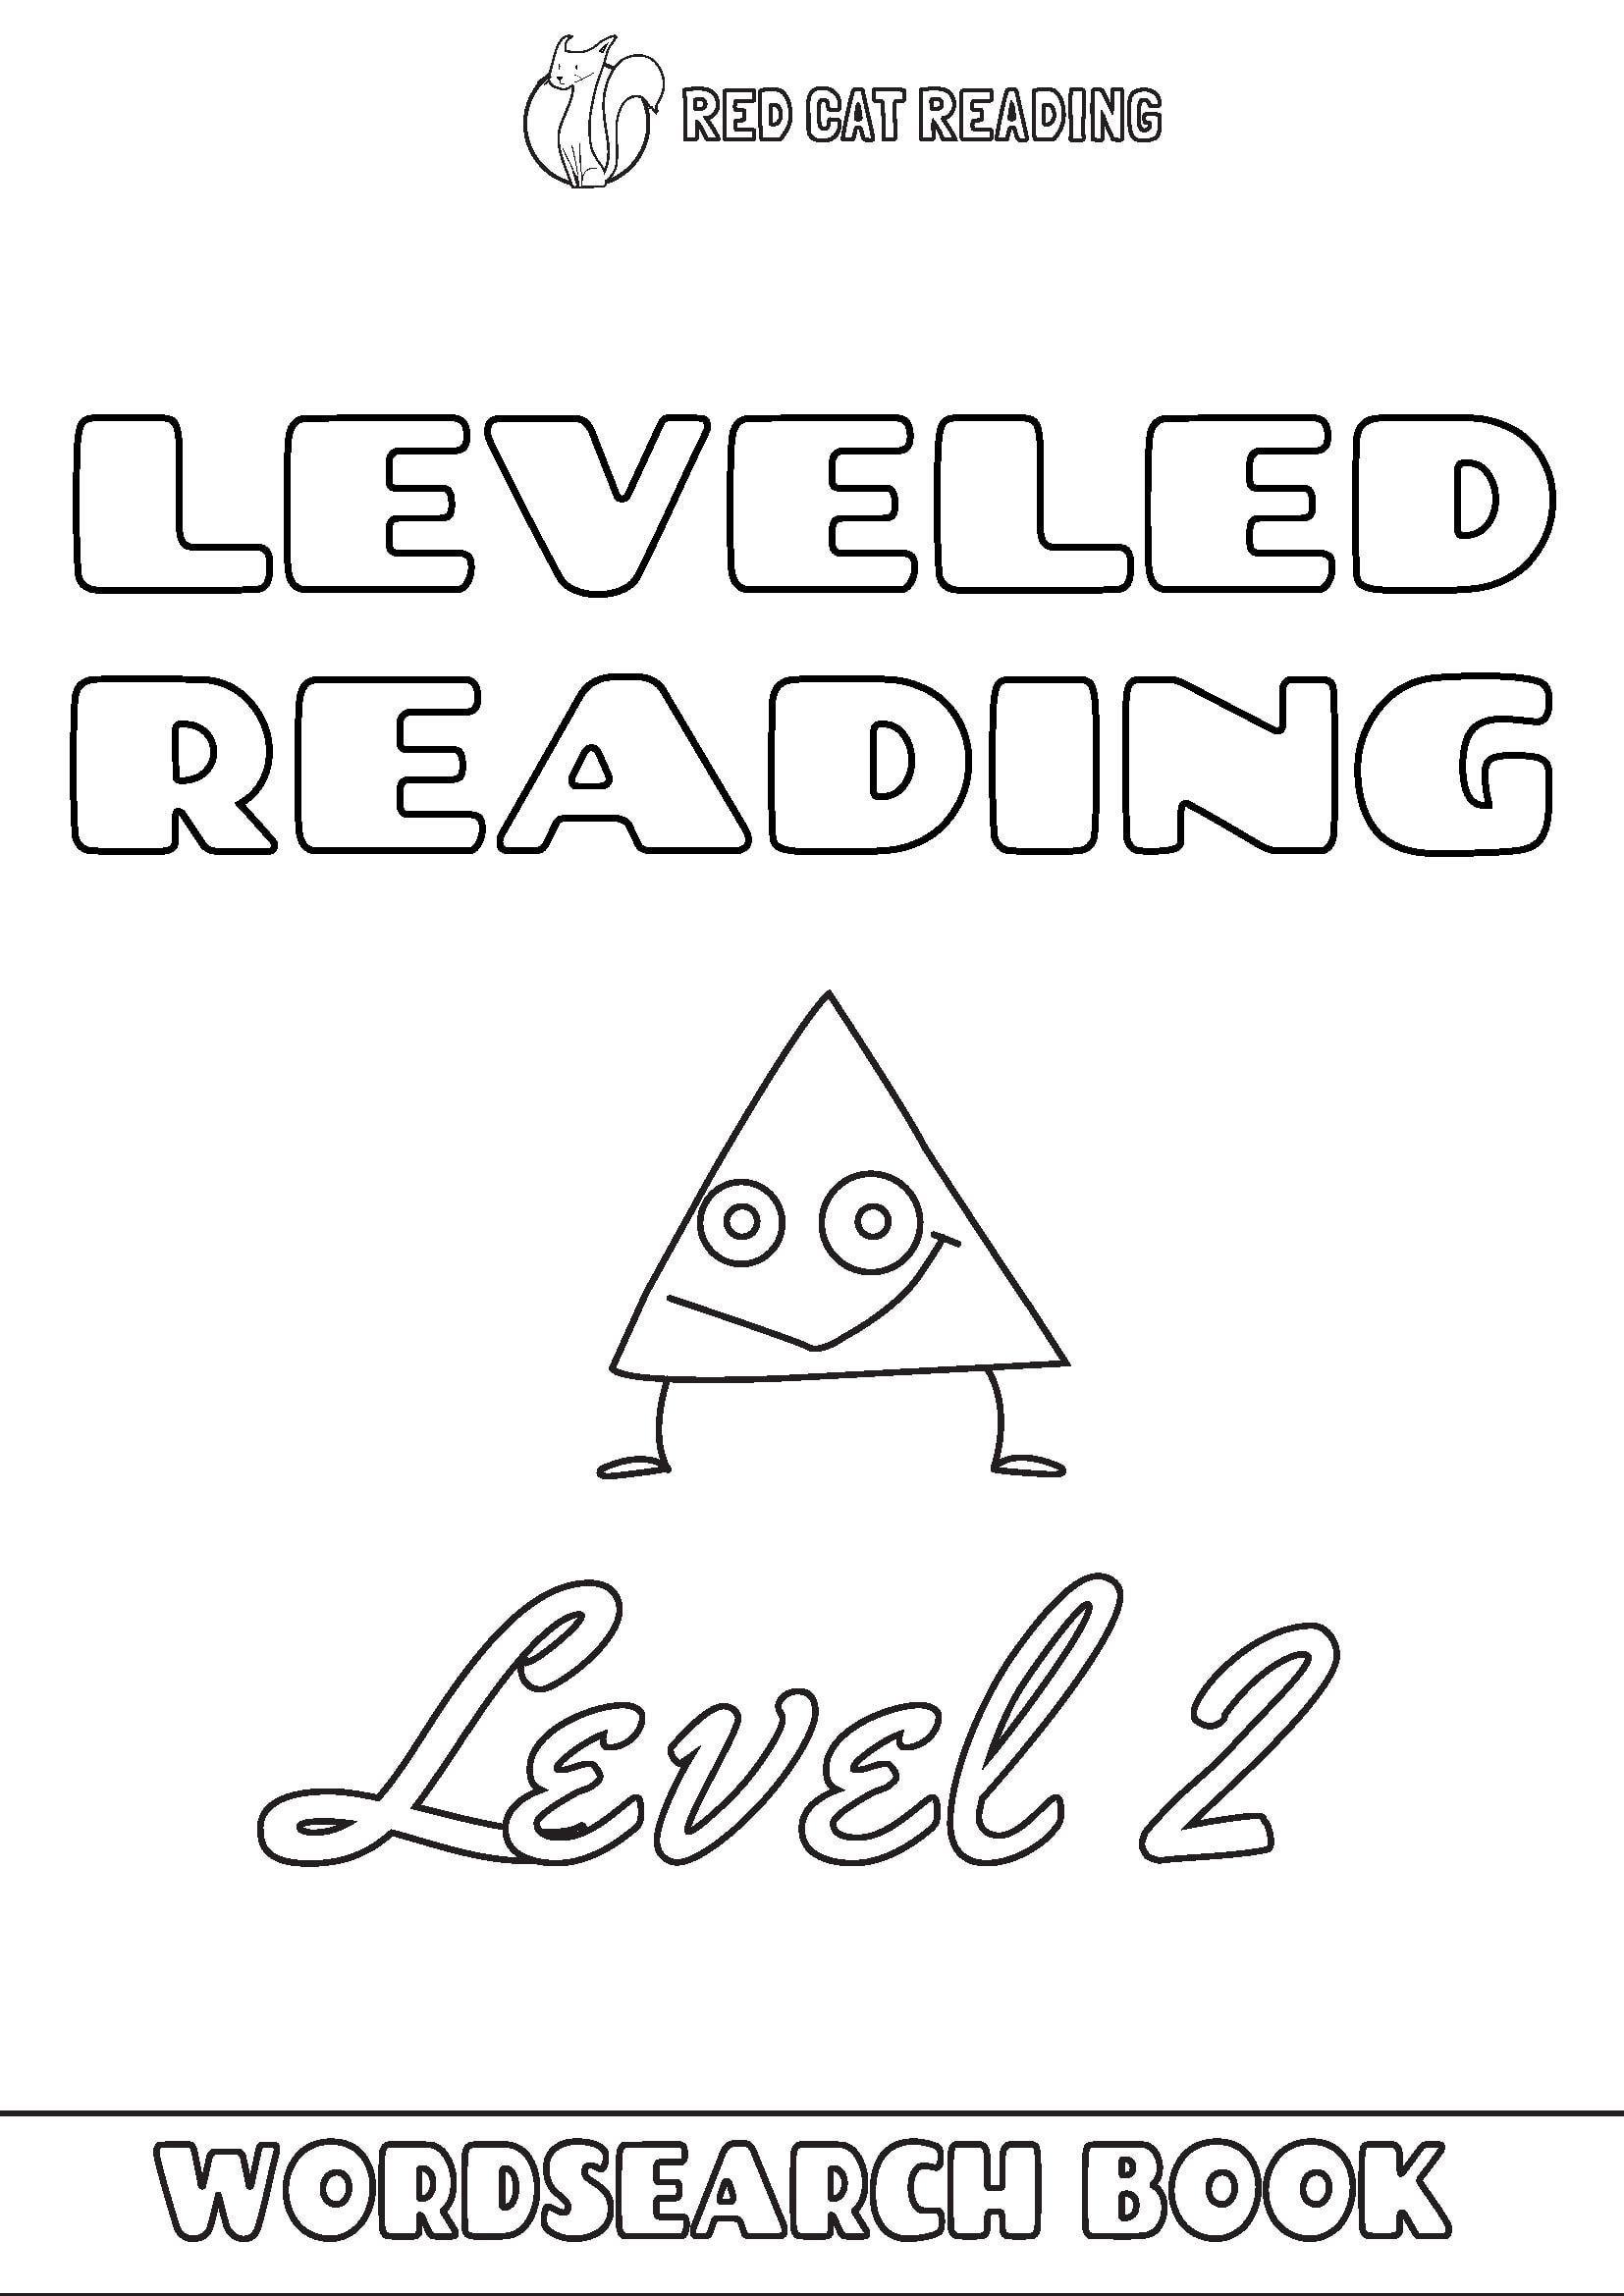 Red Cat Reading Leveled Reading Level 2 Worksheet